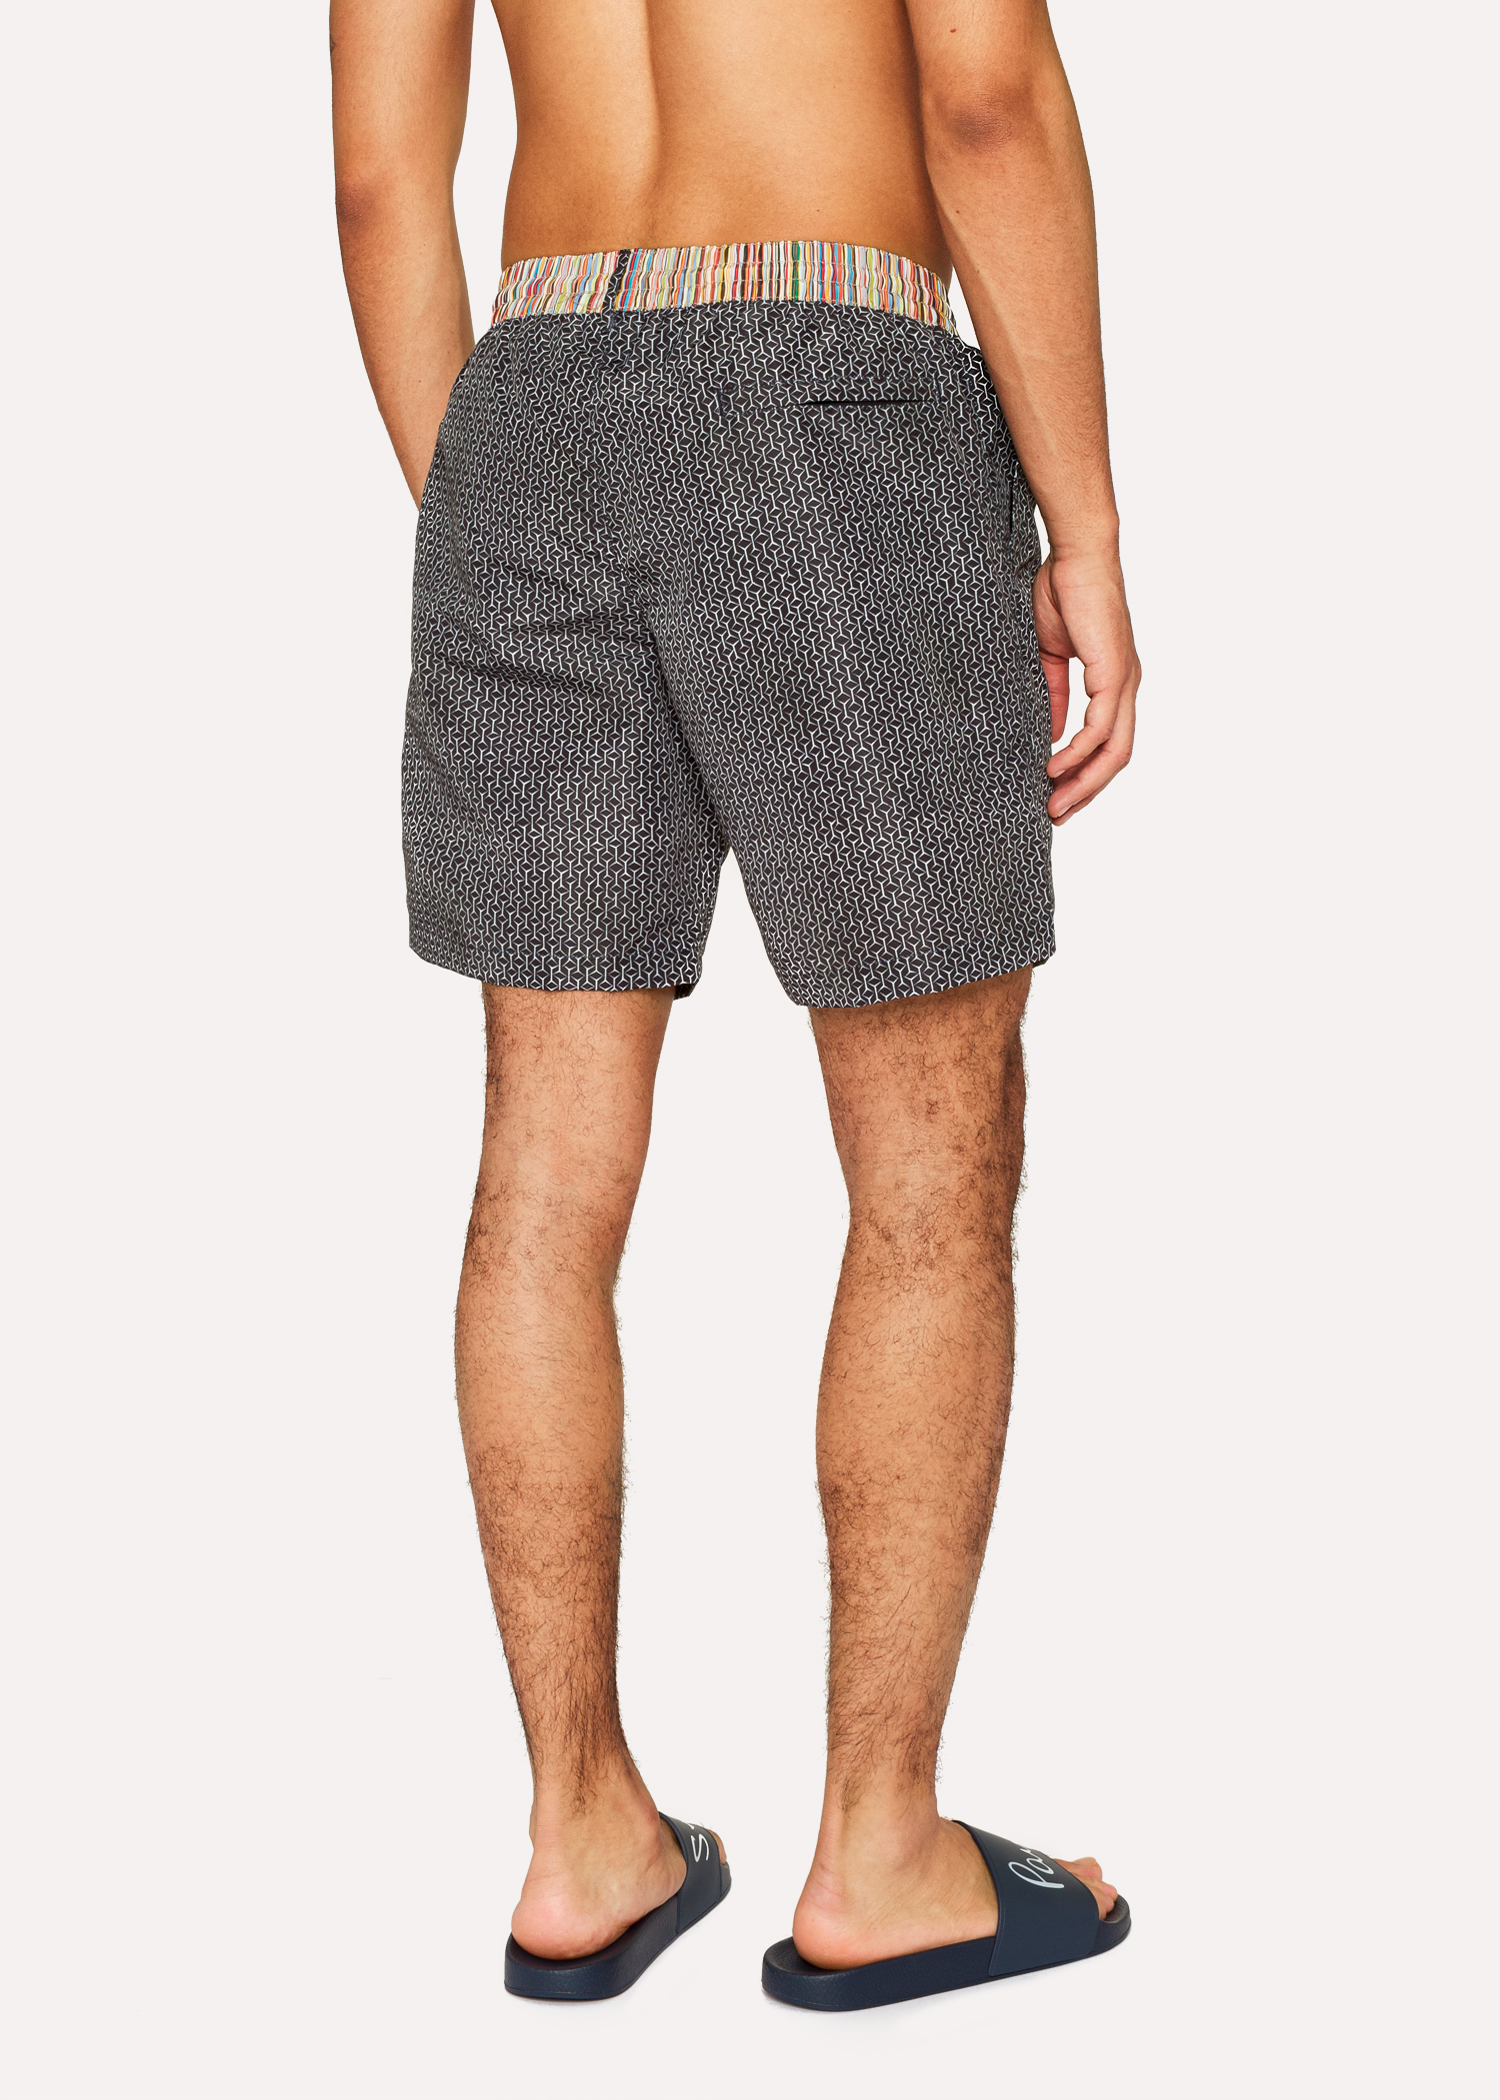 d3cc3d1866 Men's Black Geometric Print Swim Shorts by Paul Smith